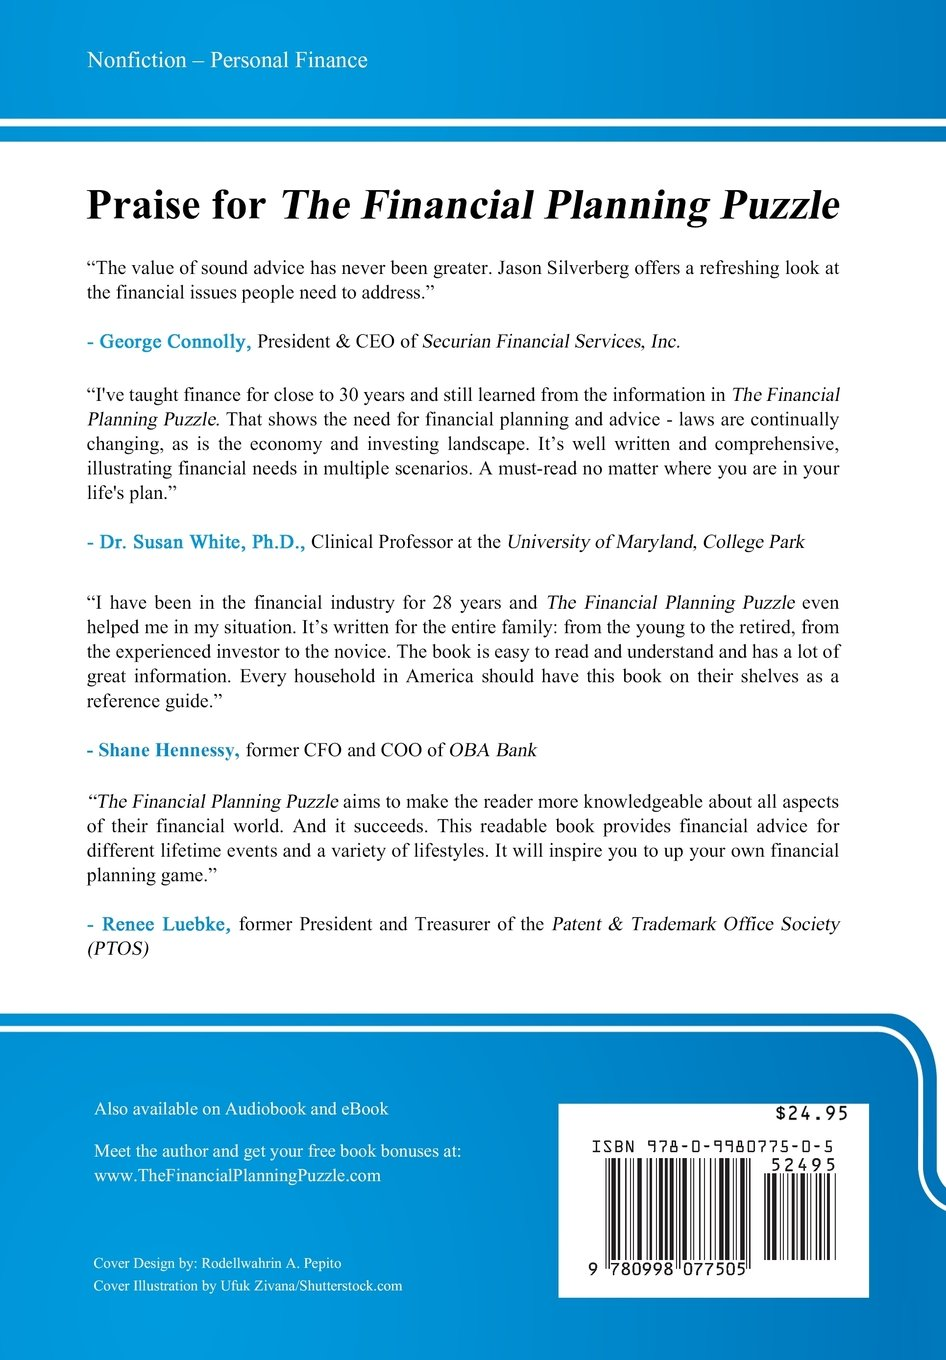 The Financial Planning Puzzle: Fitting Your Pieces Together To Create  Financial Freedom: Jason Silverberg: 9780998077505: Amazon.com: Books